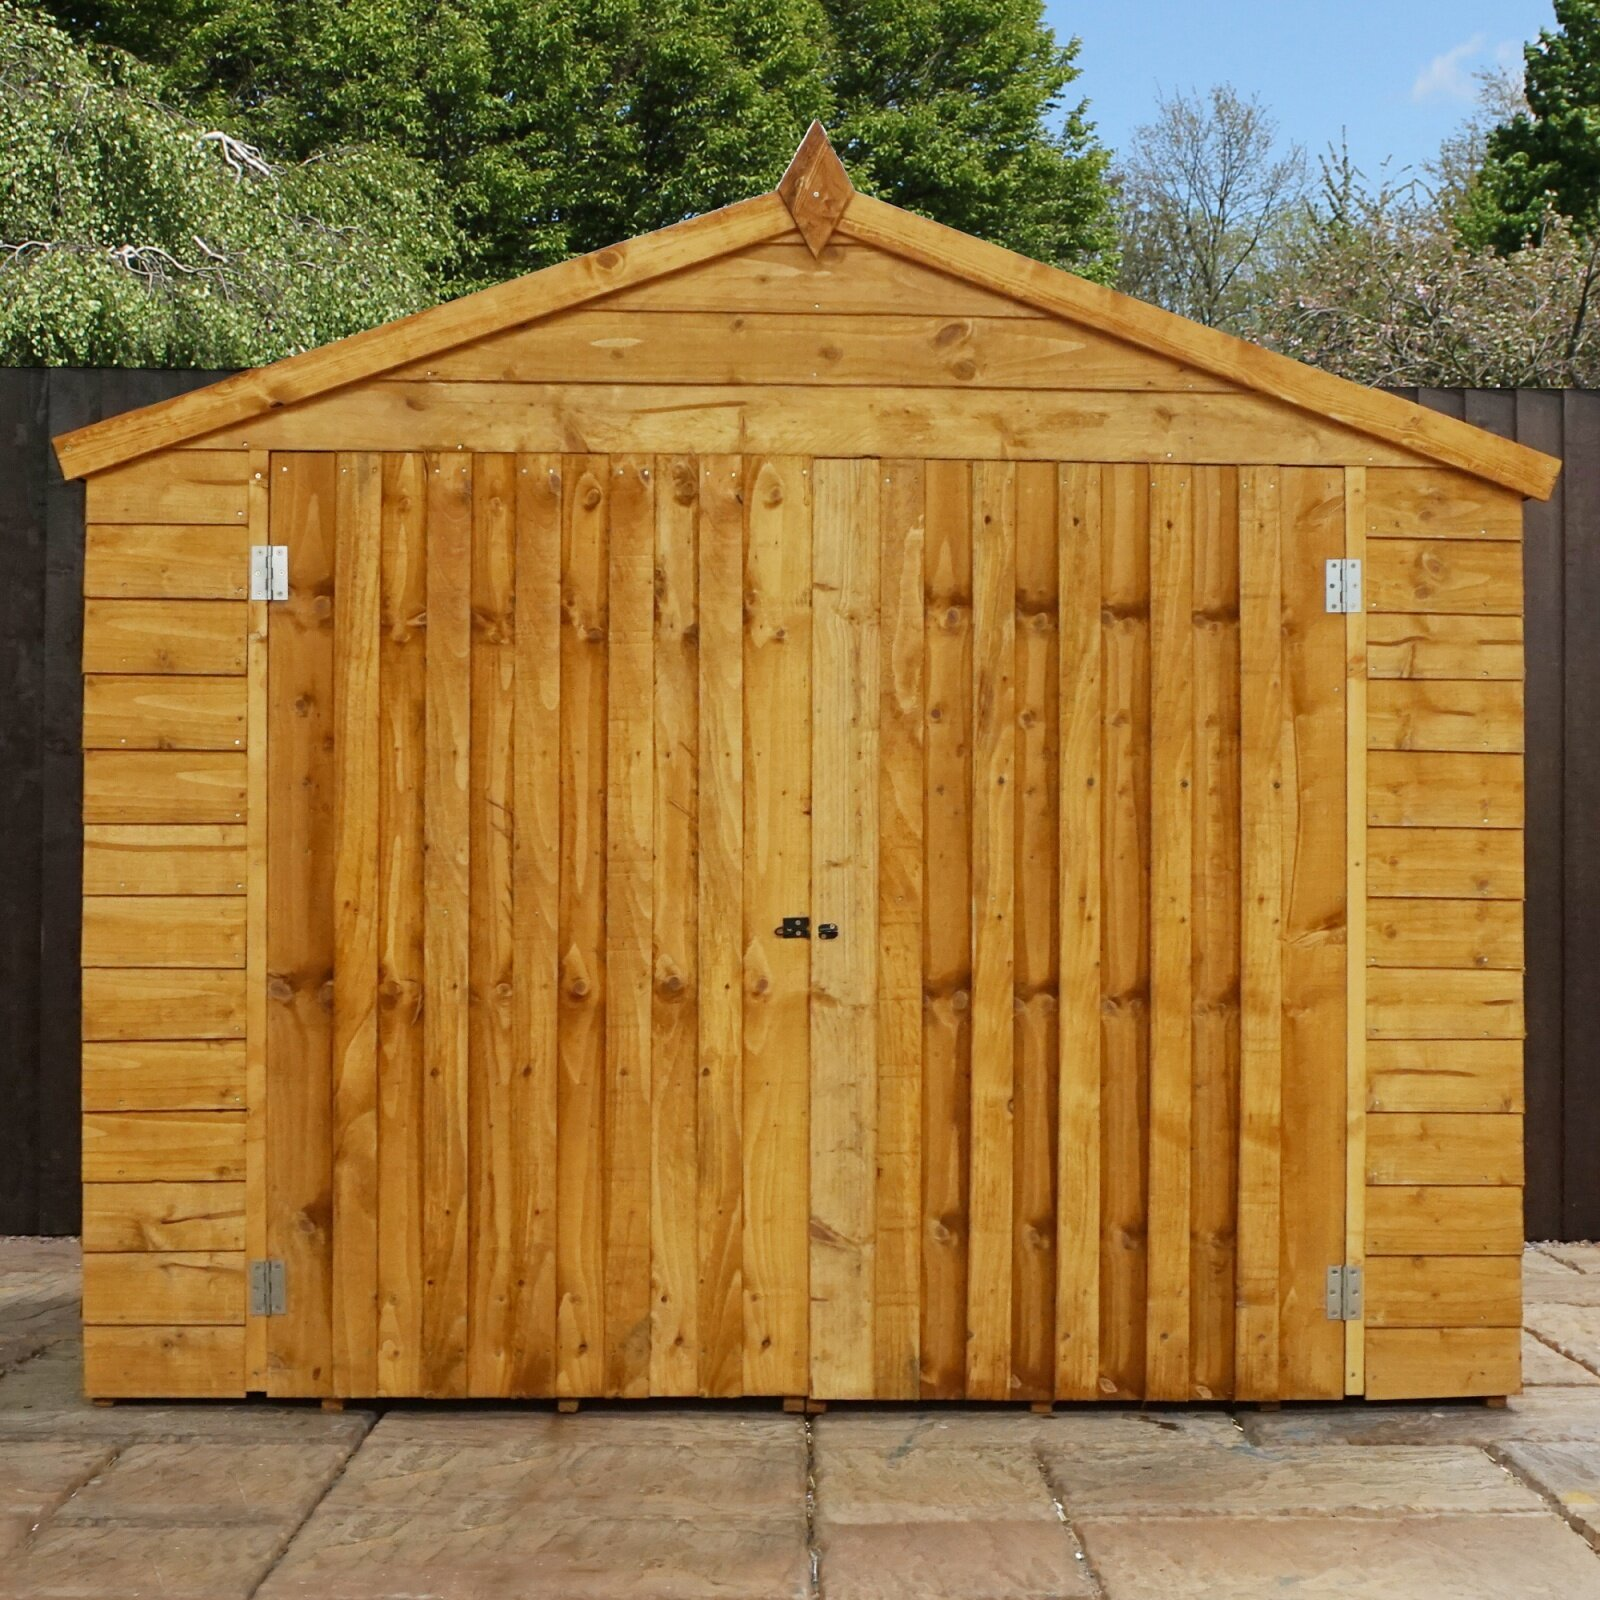 Mercia garden products 7 x 3 wooden overlap apex bike shed for Garden shed 7 x 3